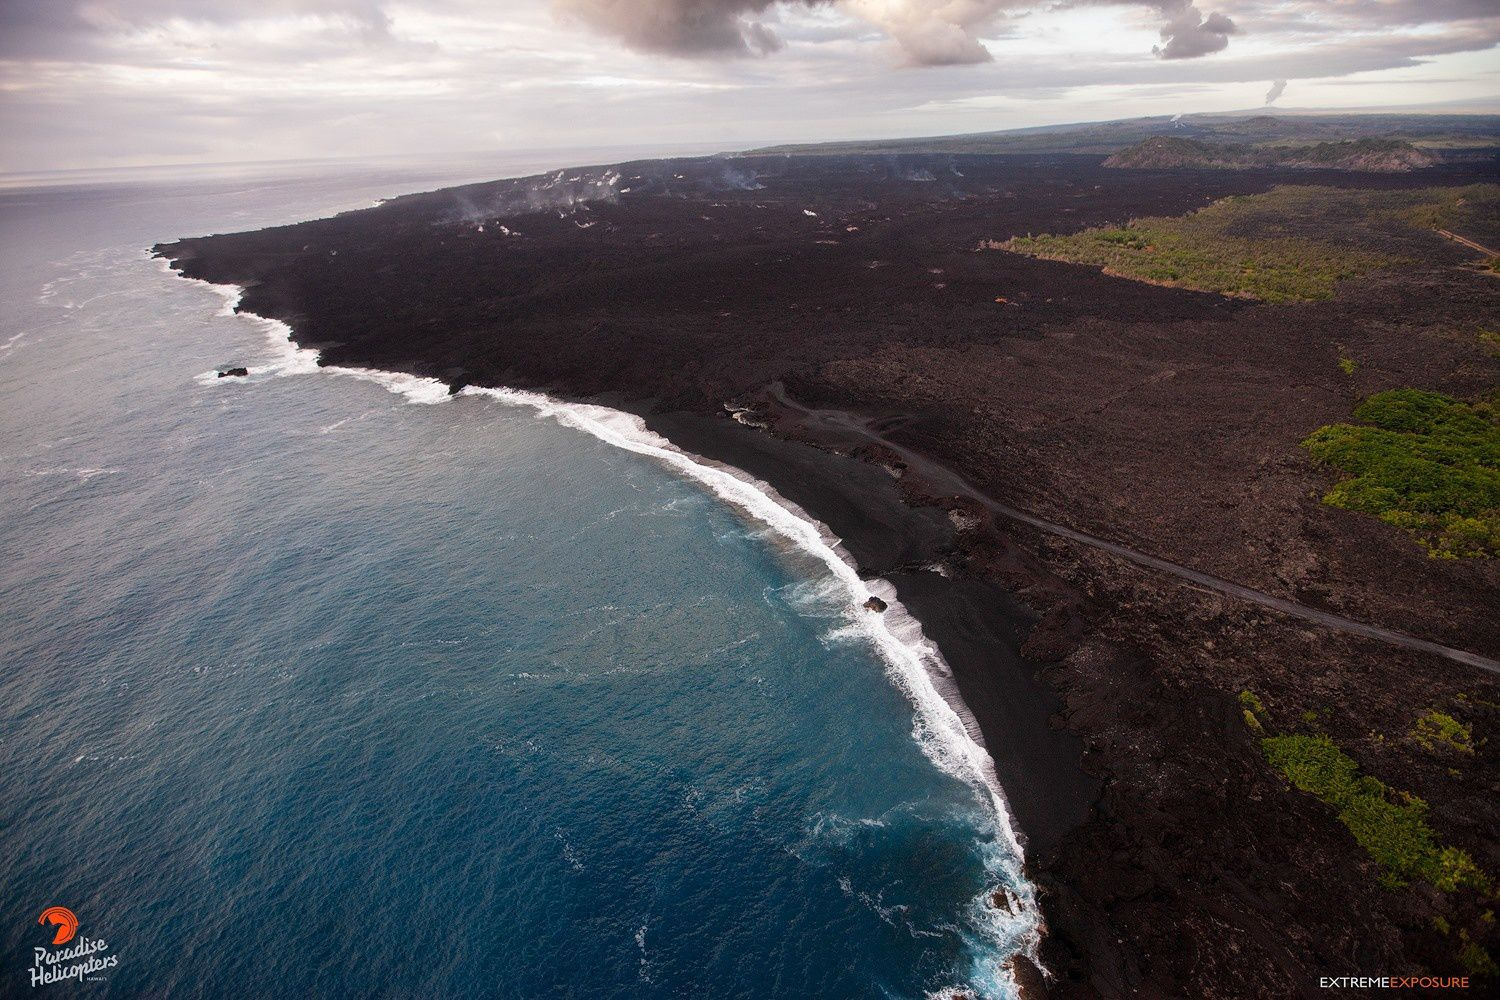 Kilauea East Rift Zone - black sand beaches at Kapoho; the Kapoho crater is visible at the top right - photo Bruce Omori 25.01.2019